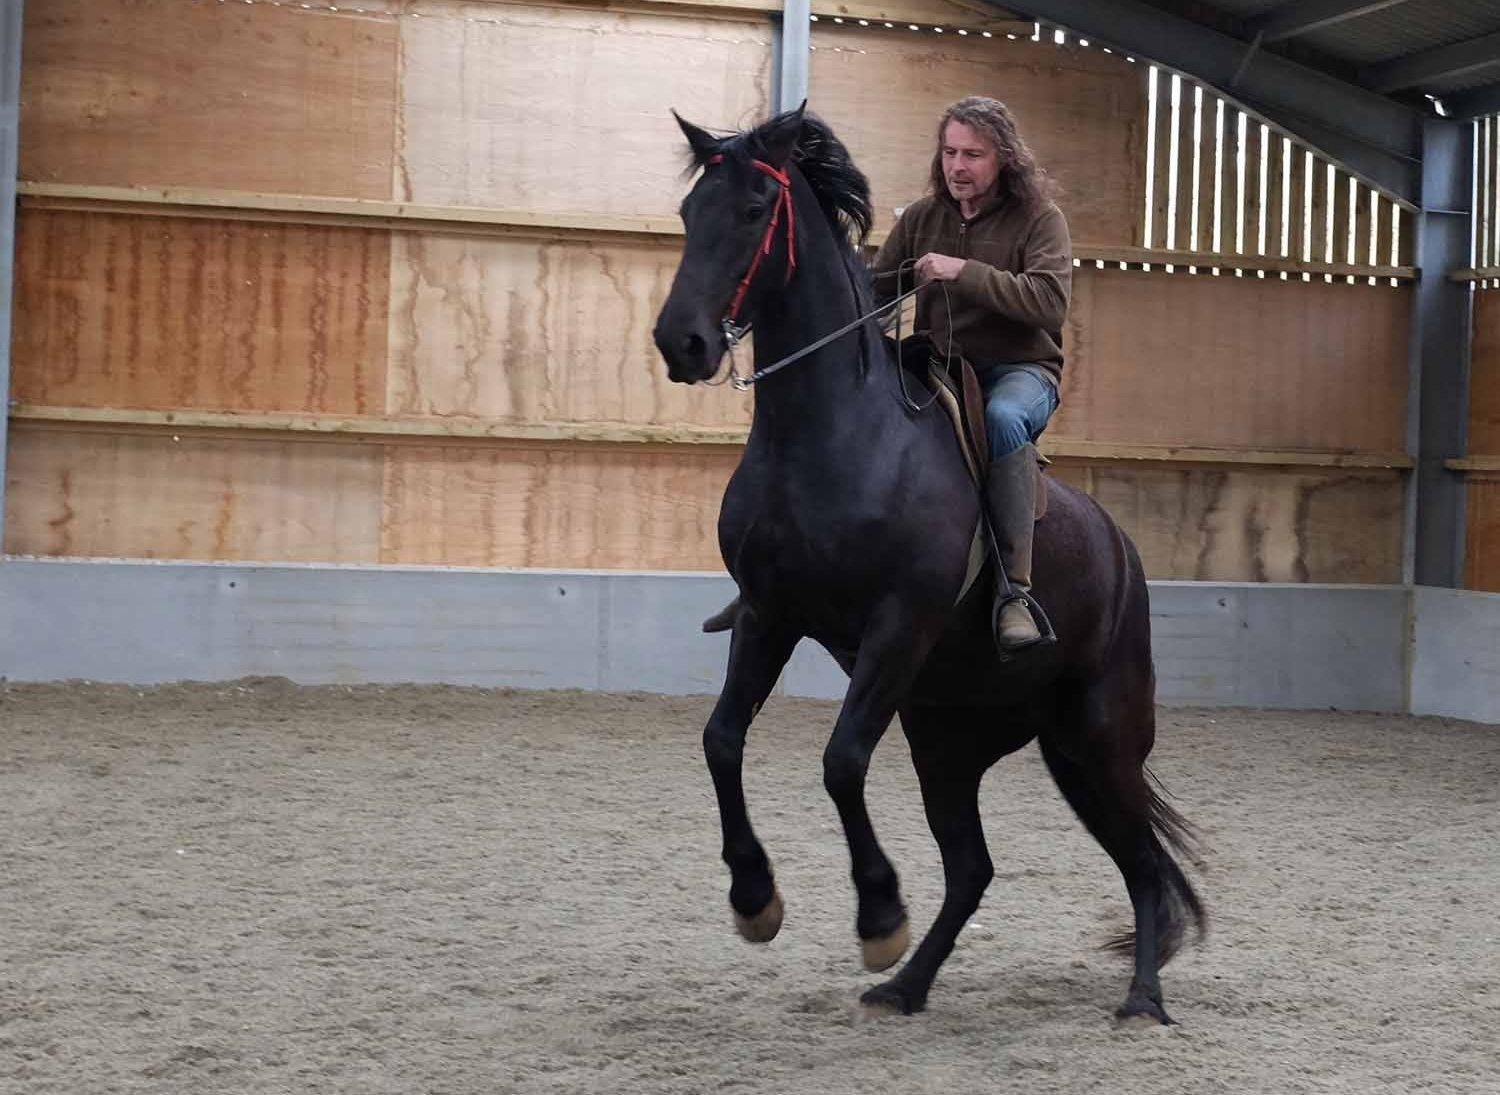 Gossamer, a young mare, being trained to rear on command with the weight of a rider .